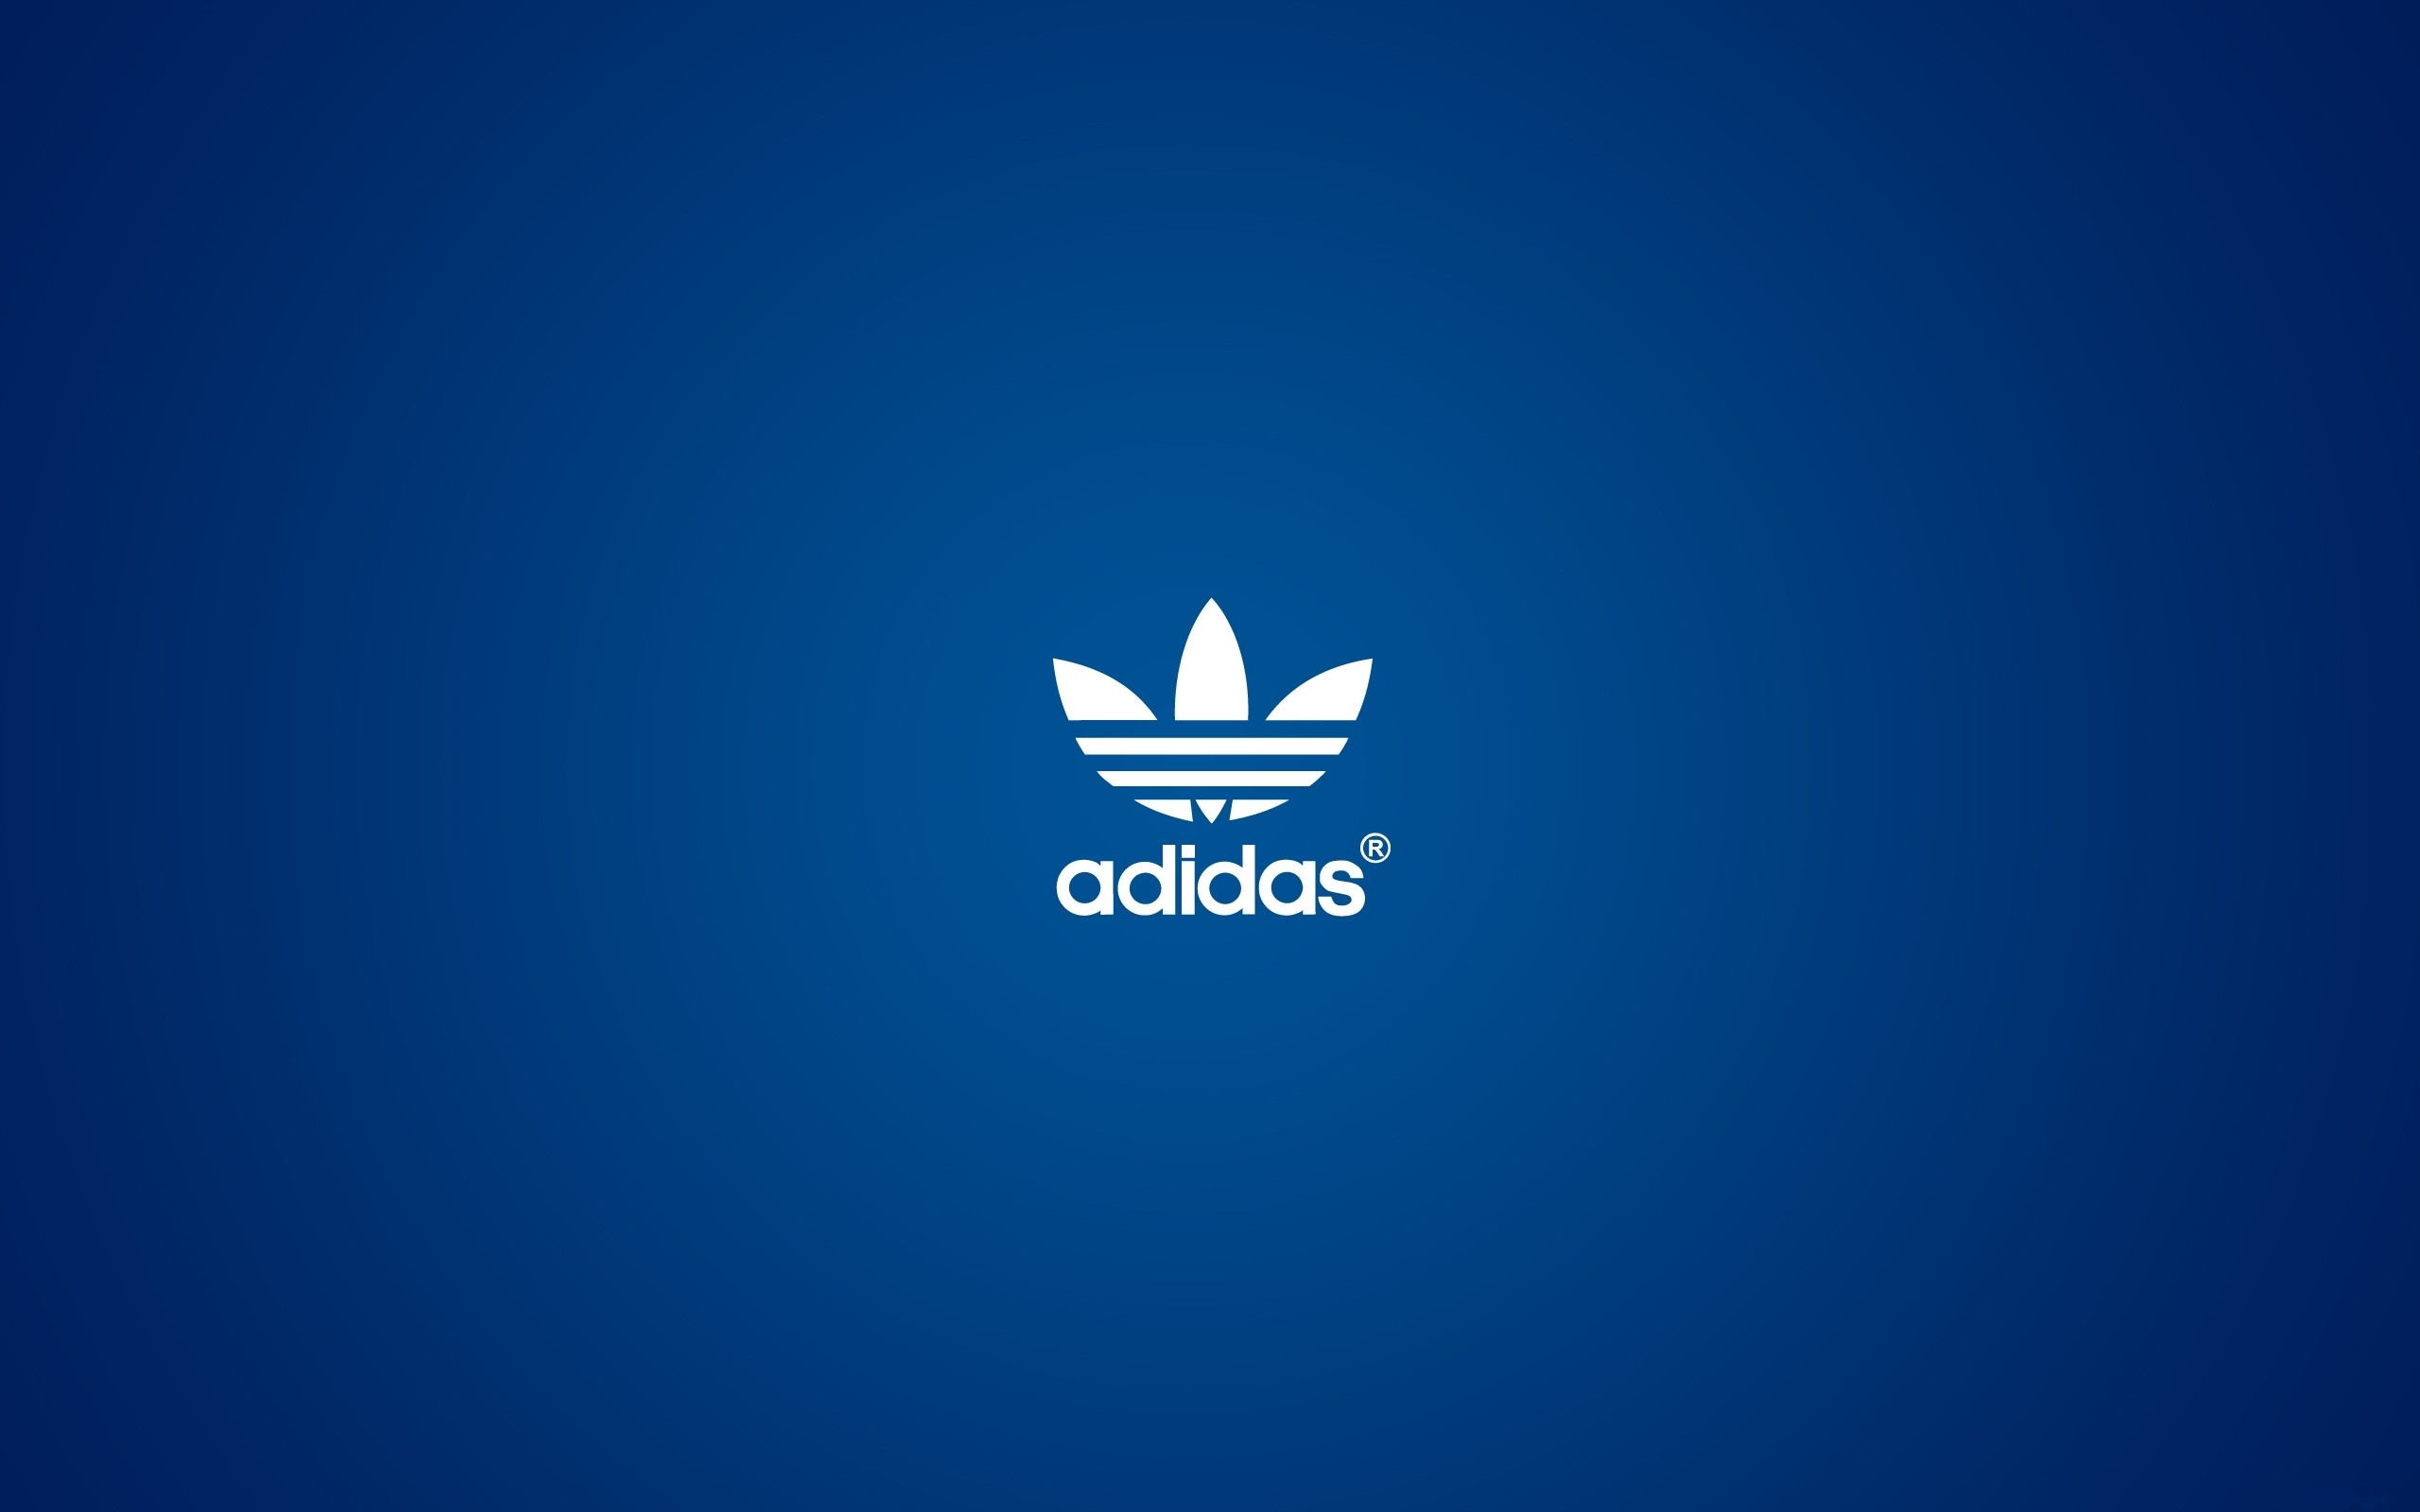 2560x1600 Sports, adidas, brand clothes wallpaper - ForWallpaper.com